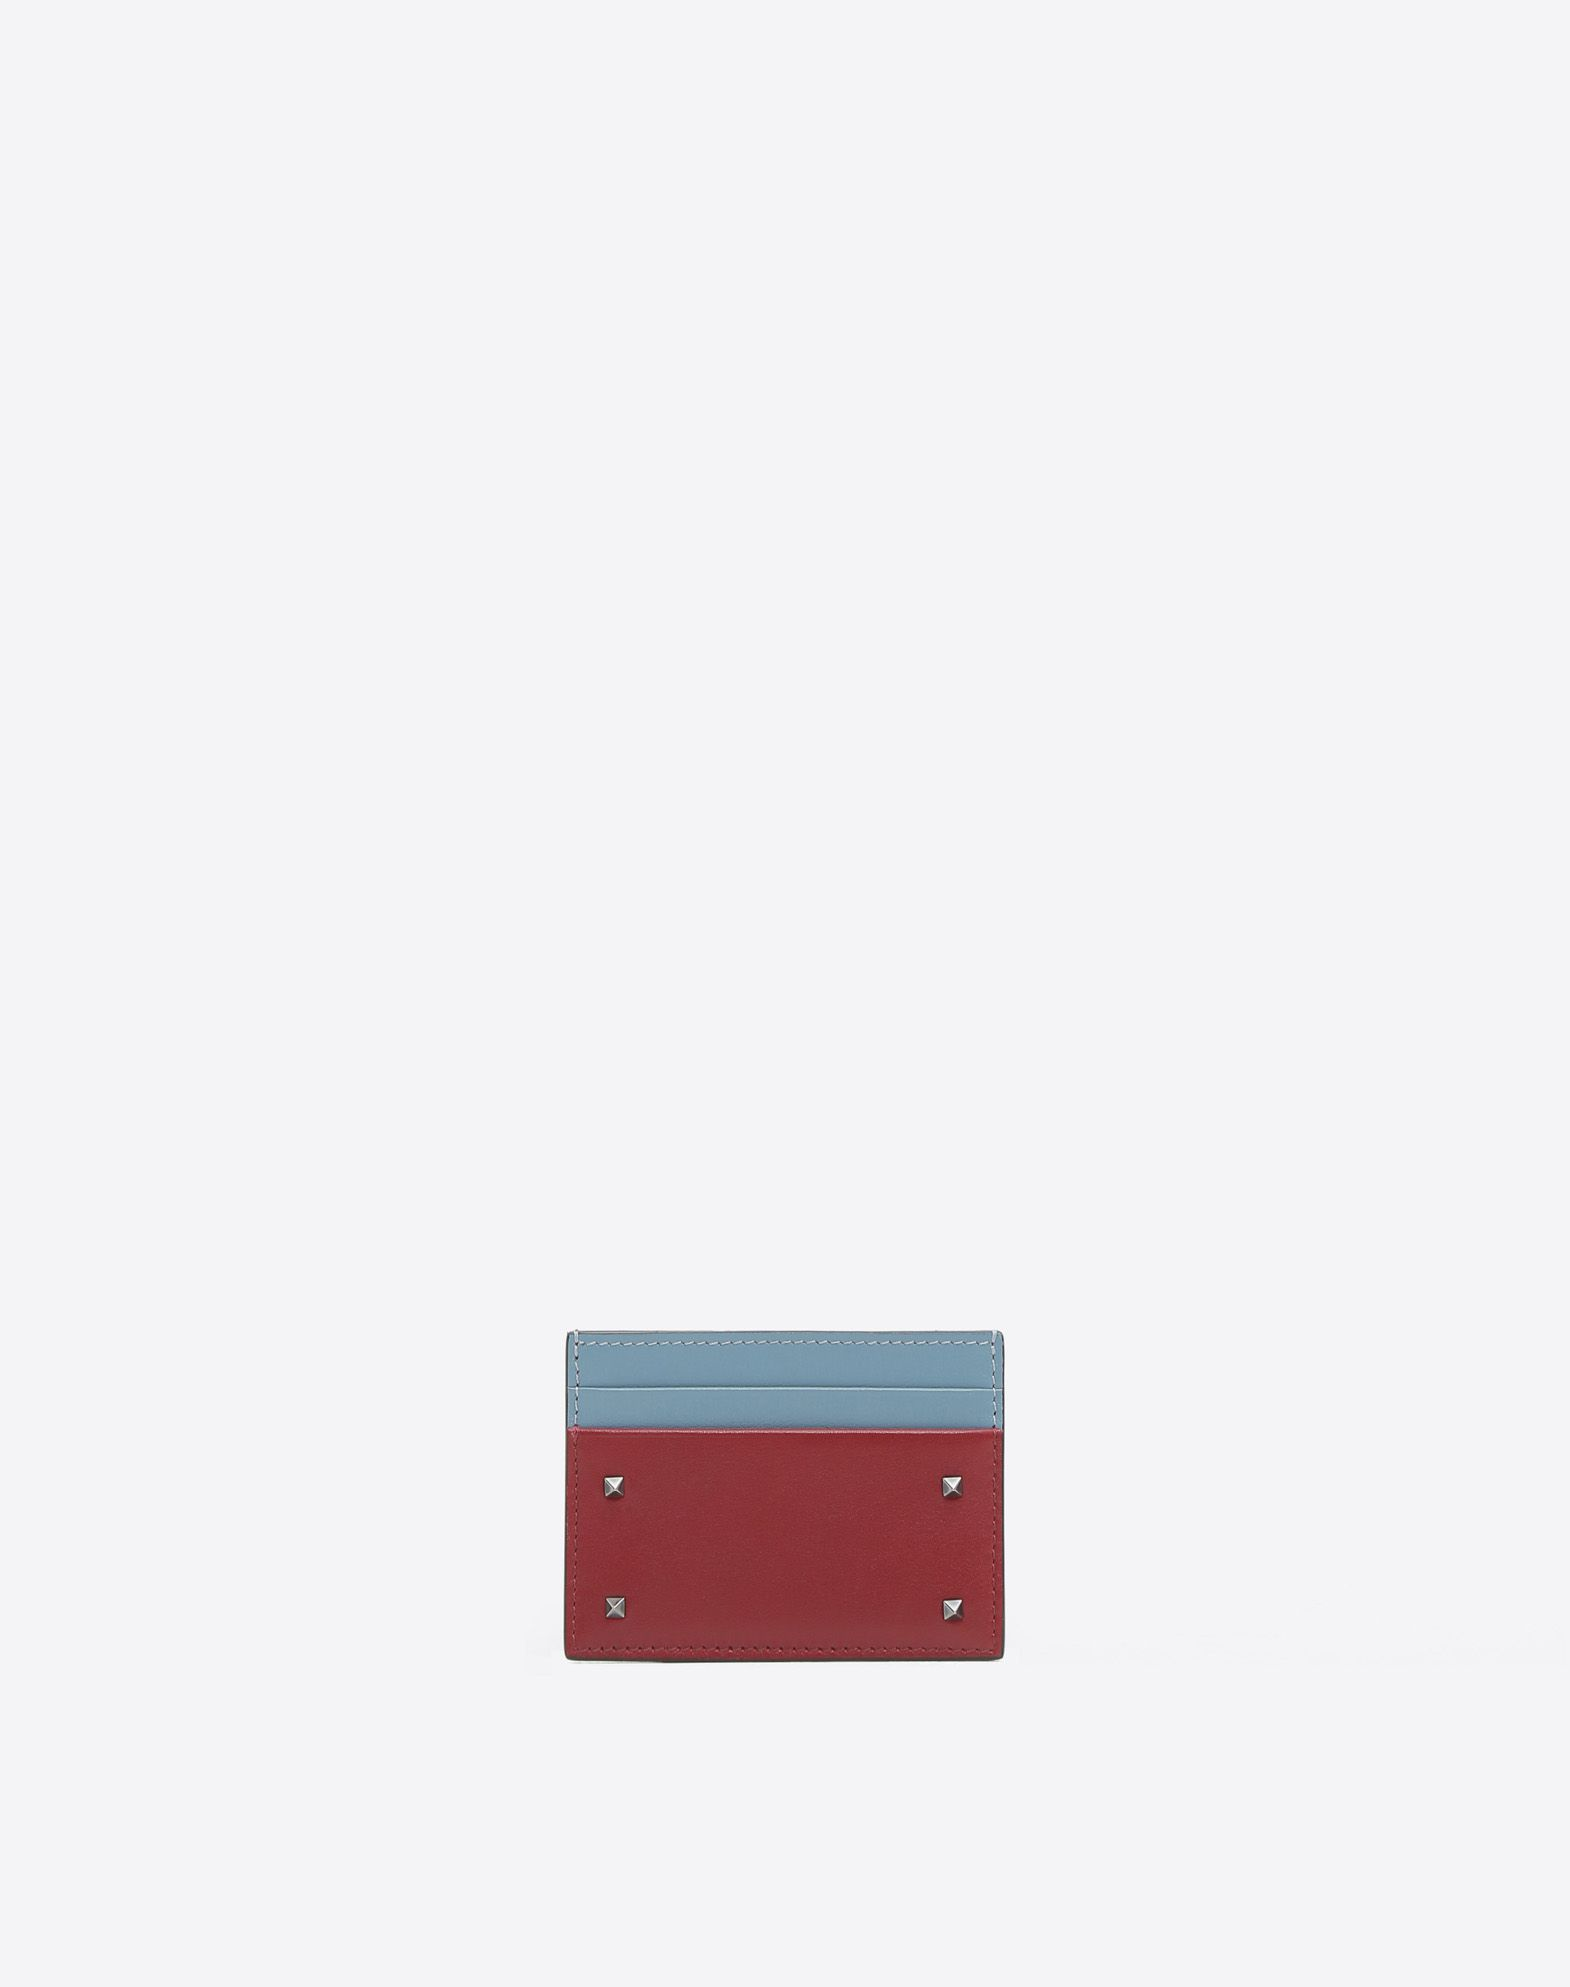 VALENTINO GARAVANI UOMO Rockstud Card Case COIN PURSES & CARD CASES U f